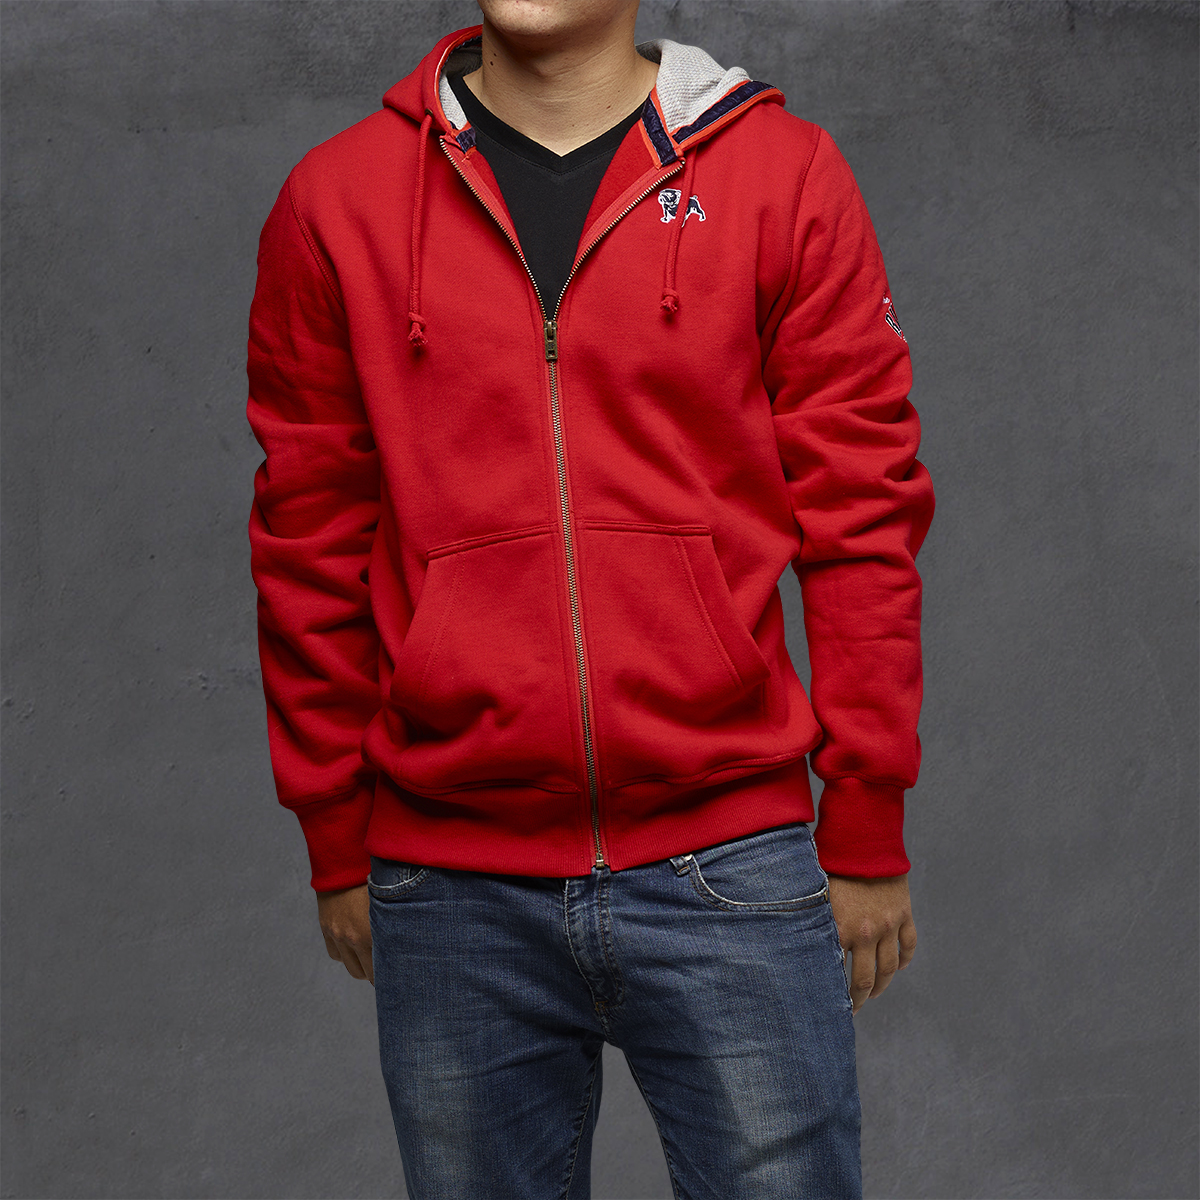 Guys Heritage Hoodies - Cherry Tomato